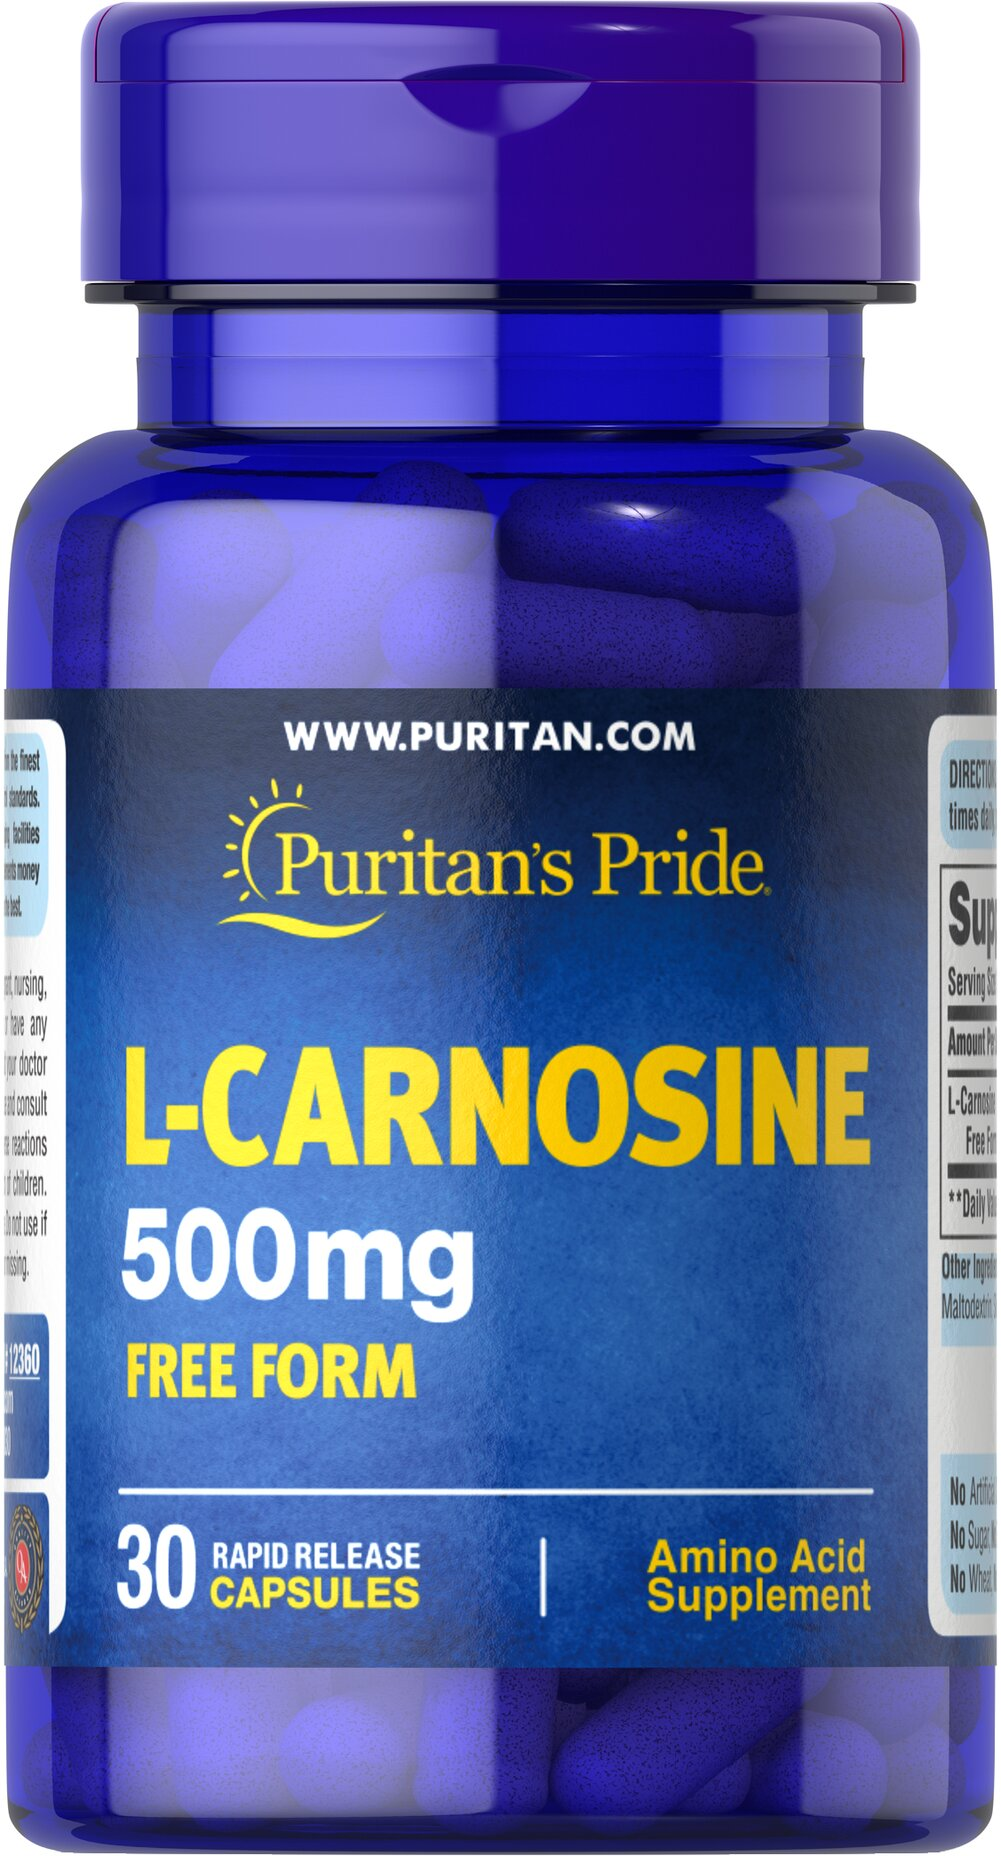 L-Carnosine 500 mg <p>L-Carnosine, one of the most abundant water-soluble nitrogen compounds found in muscle, supports cognitive and nervous system health.** Carnosine can have a positive effect on the brain's learning process.** In addition, L-Carnosine is also involved in the chelation of some heavy metals.**</p><p>Supports Cognitive Health**</p> 30 Capsules 500 mg $20.69